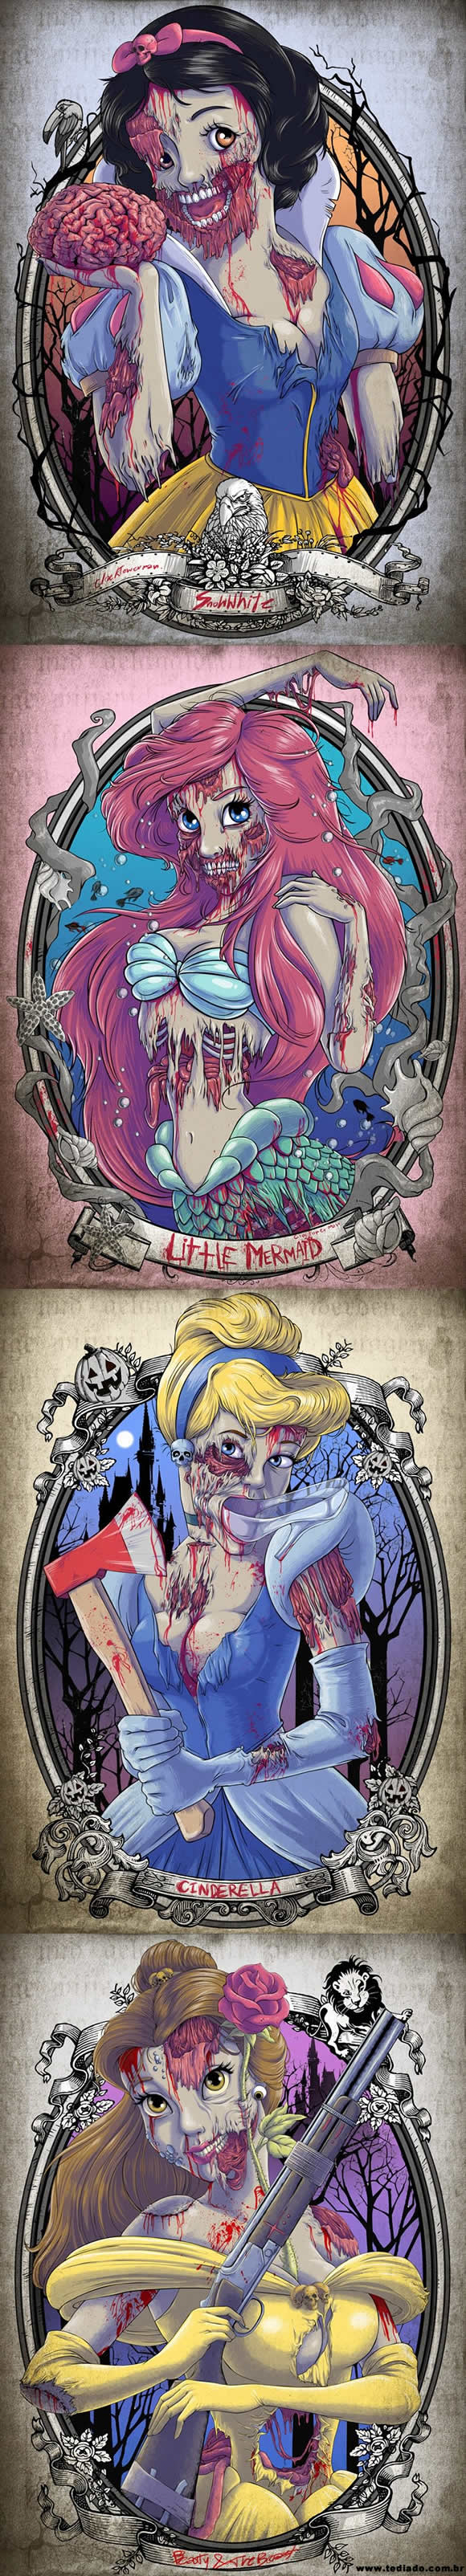 As Princesas da Disney Zombie - as princesas da disney zombie - As Princesas da Disney Zombie